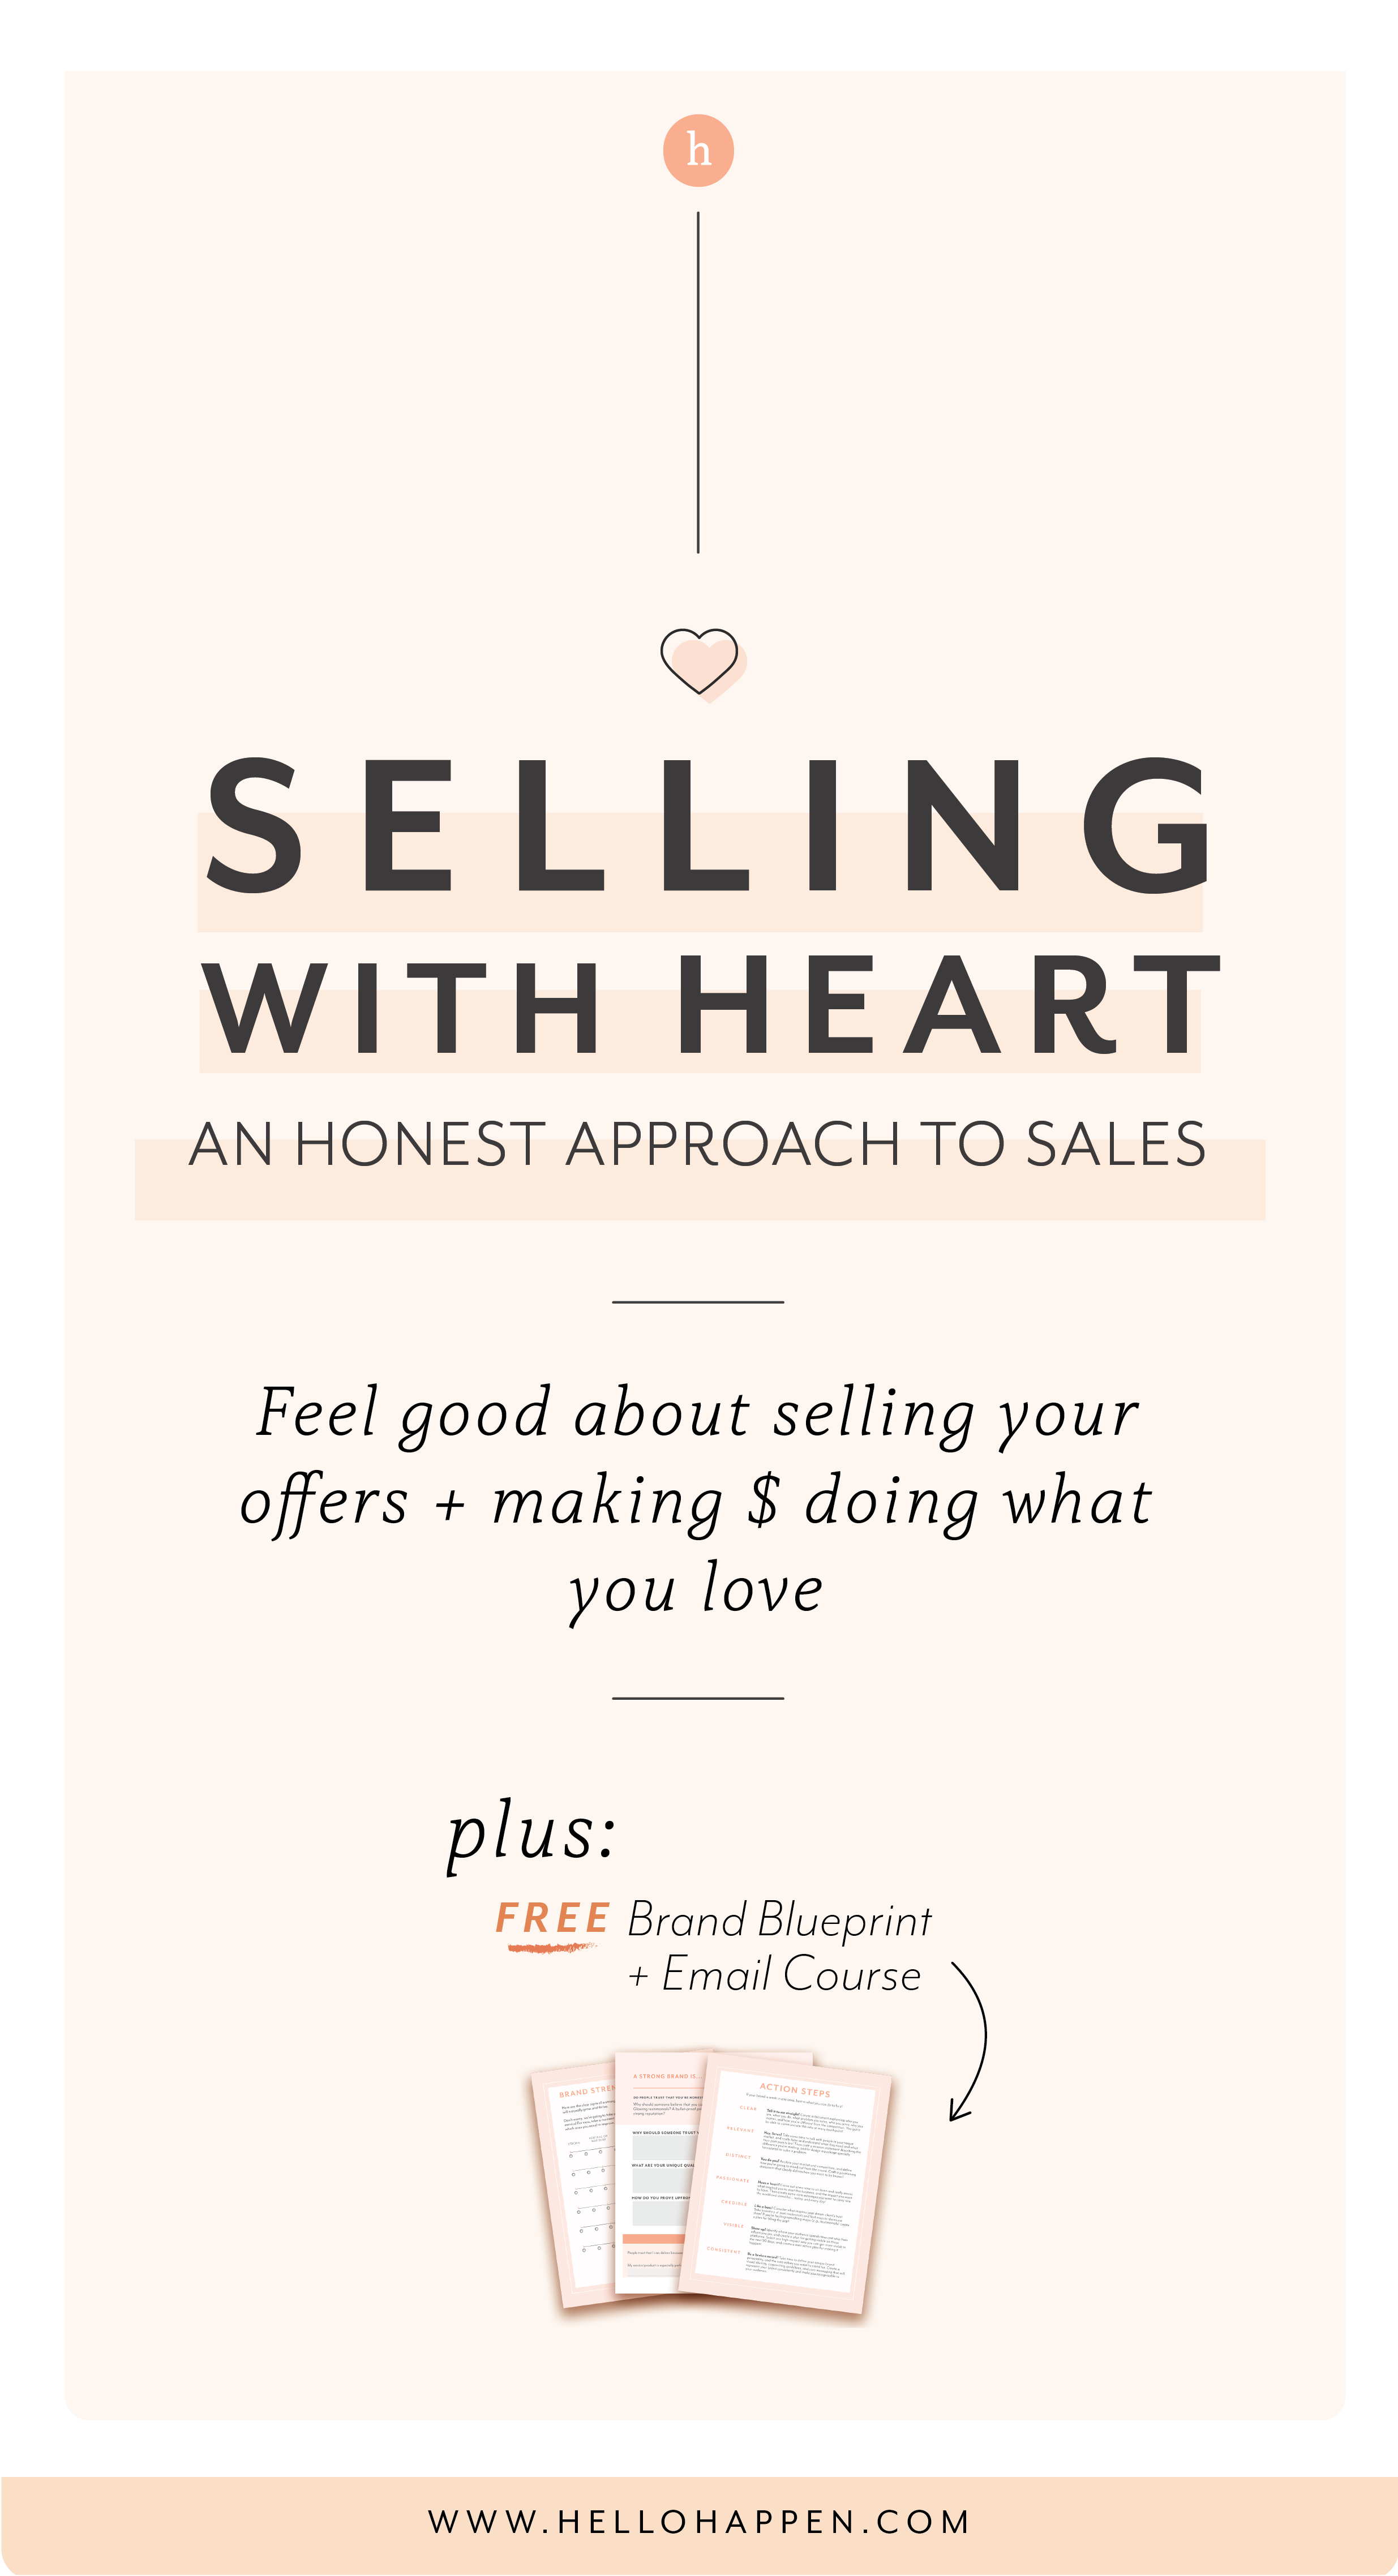 Sales doesn't have to feel gross! It can be more like a genuine service to your community. Catch this post and learn how to sell authentically and with heart! // Hellohappen Brand Strategy / brand strategy for passionate entrepreneurs #salesstrategy #mindfulbusiness